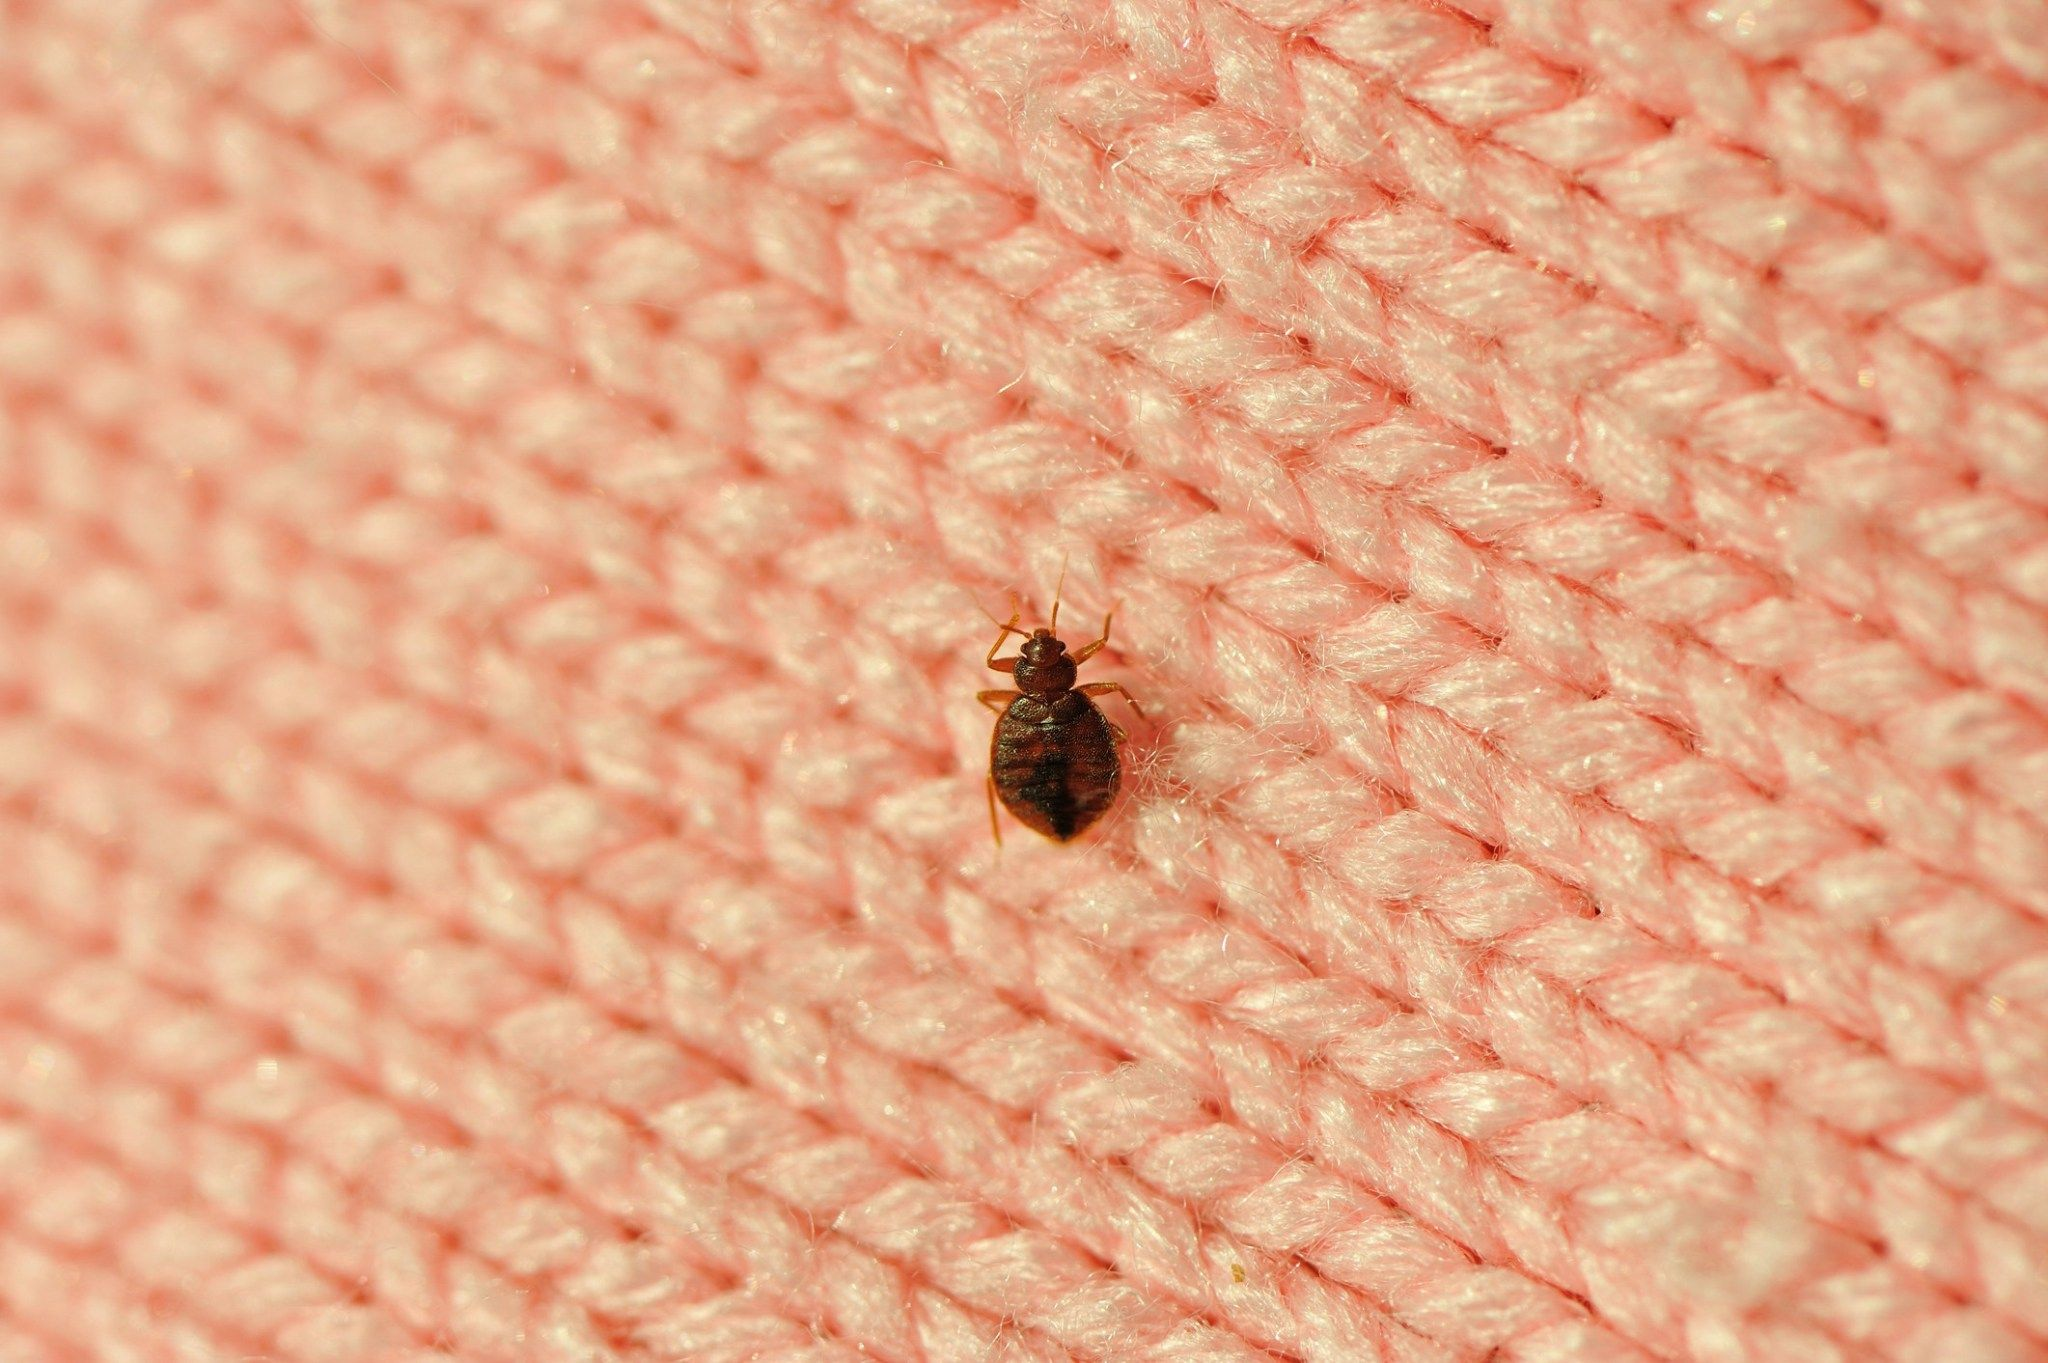 How We Caught Bedbugs Traveling And The Nightmare That Followed